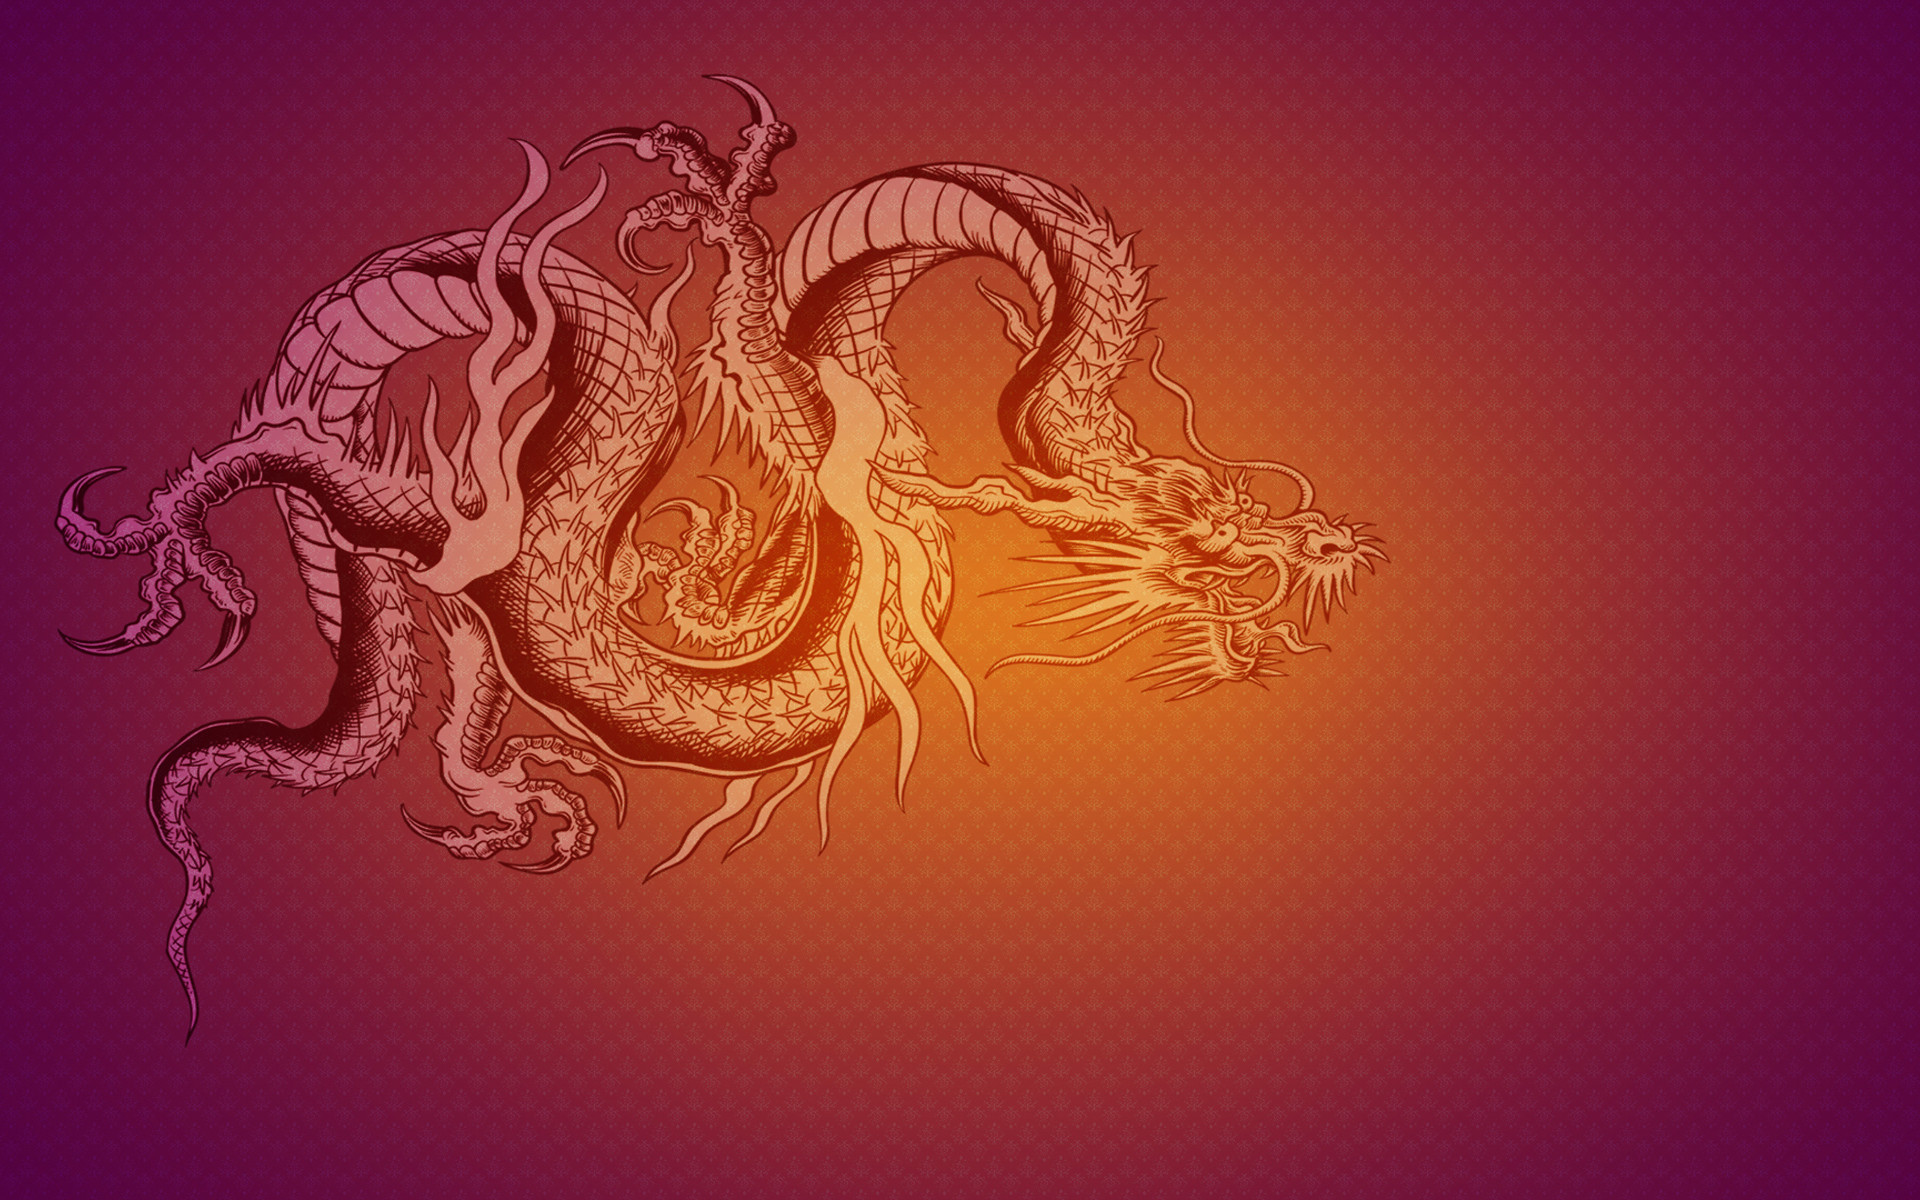 1920x1200 The dragon flag